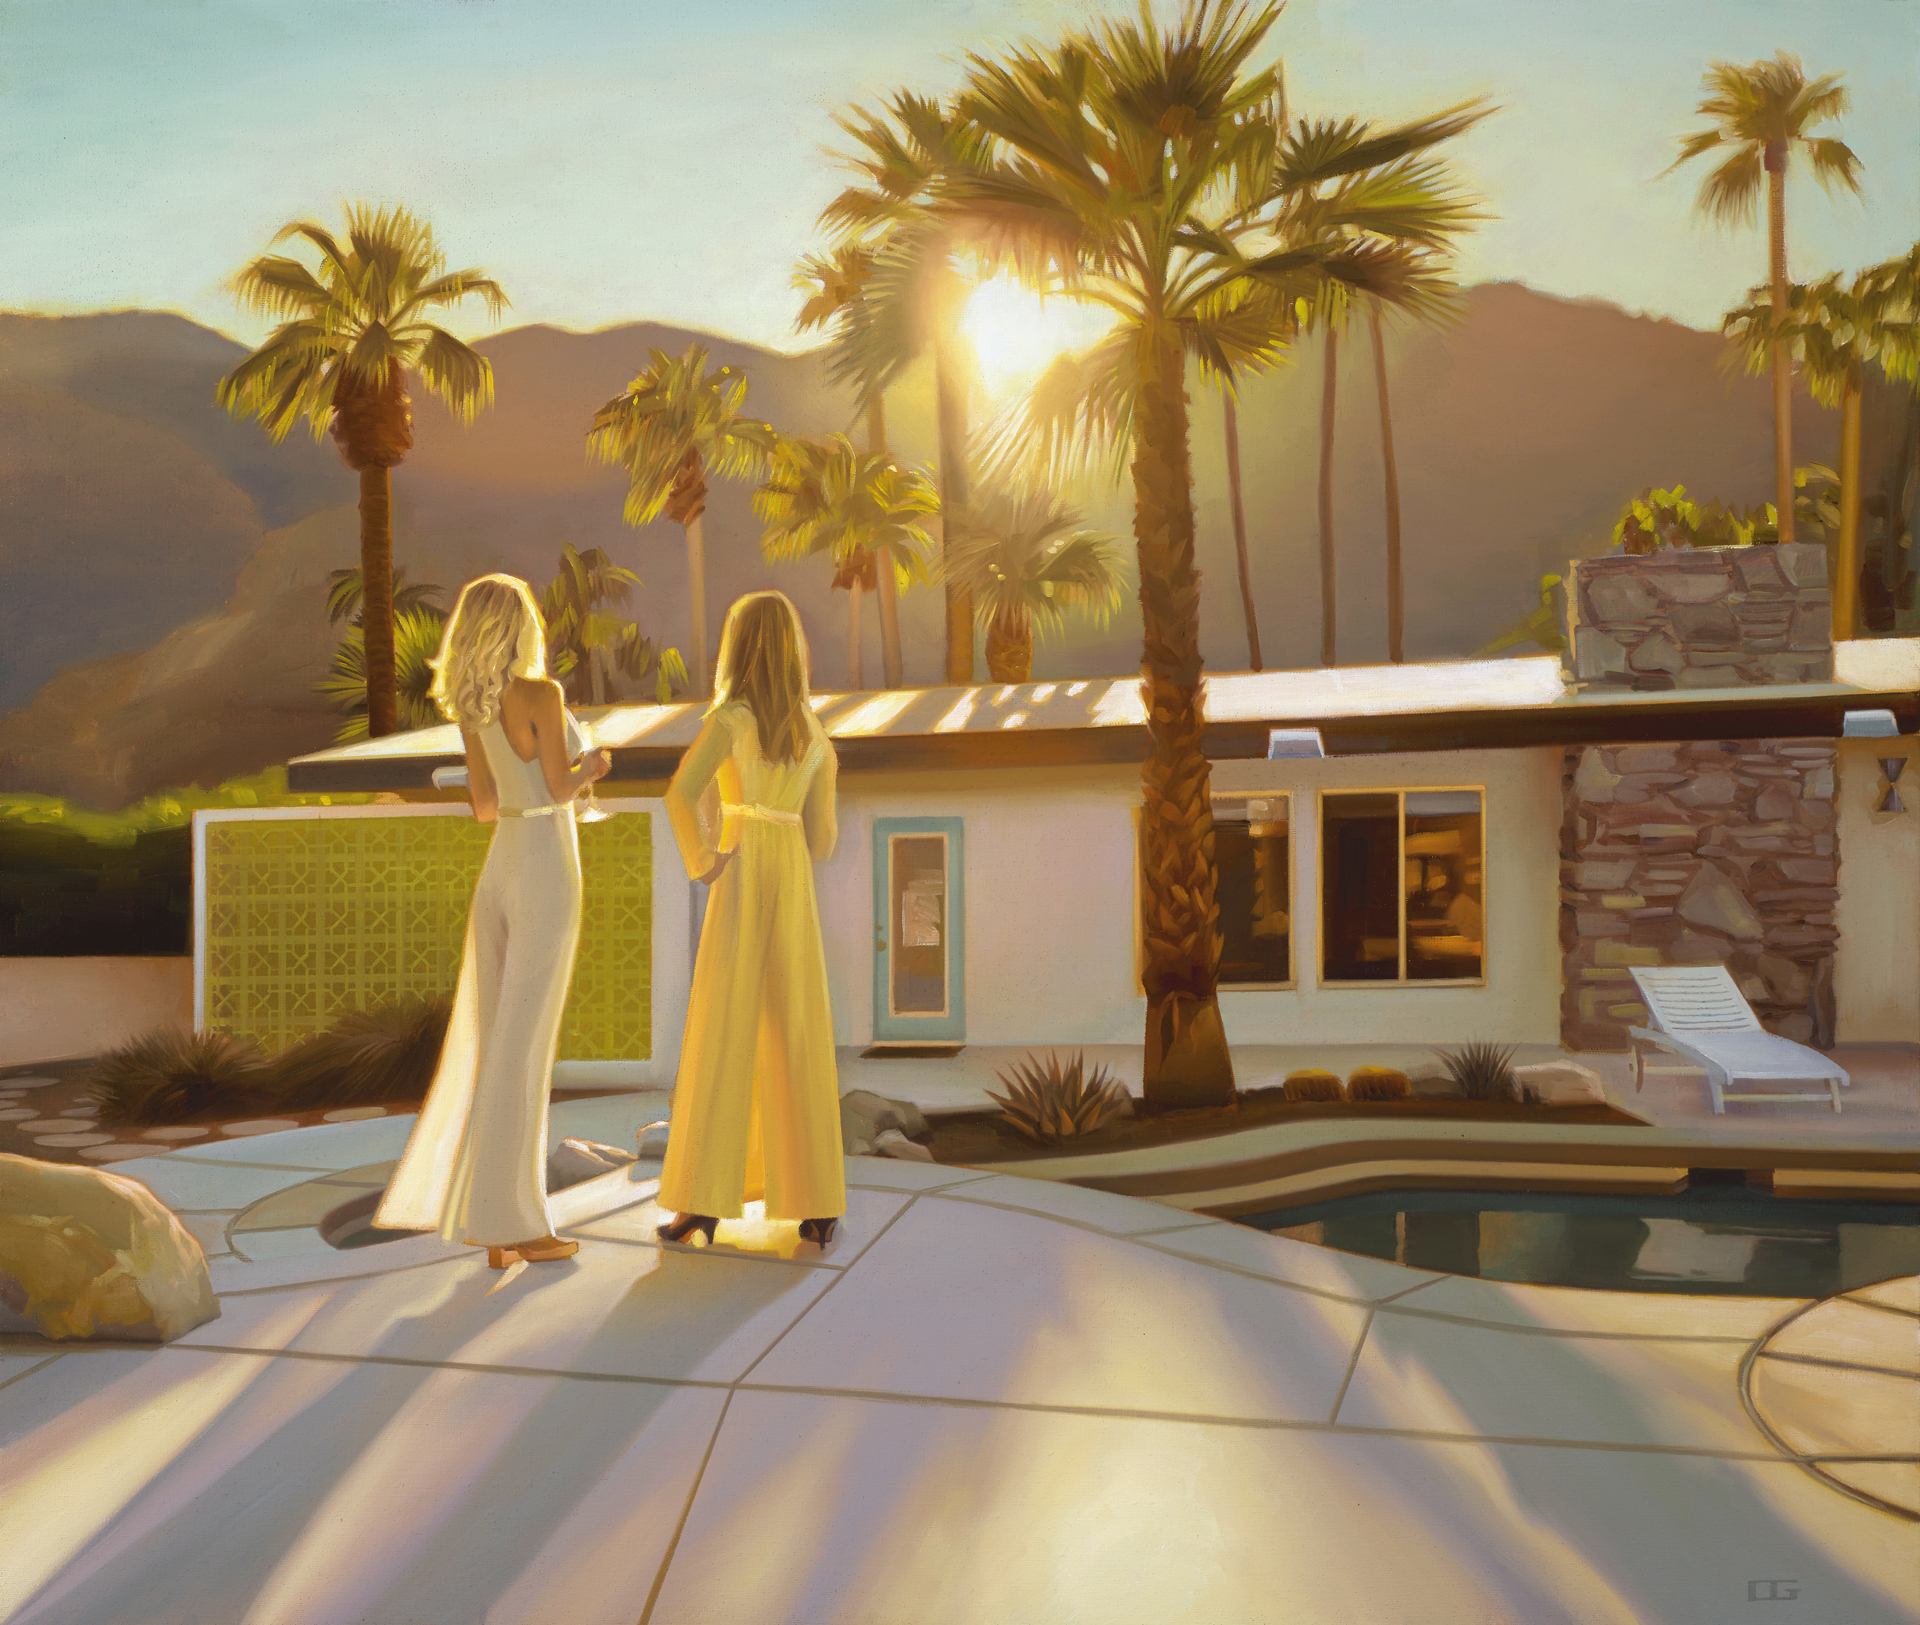 When The Sun Dips (Behind The Mountains) (S/N) by Carrie Graber